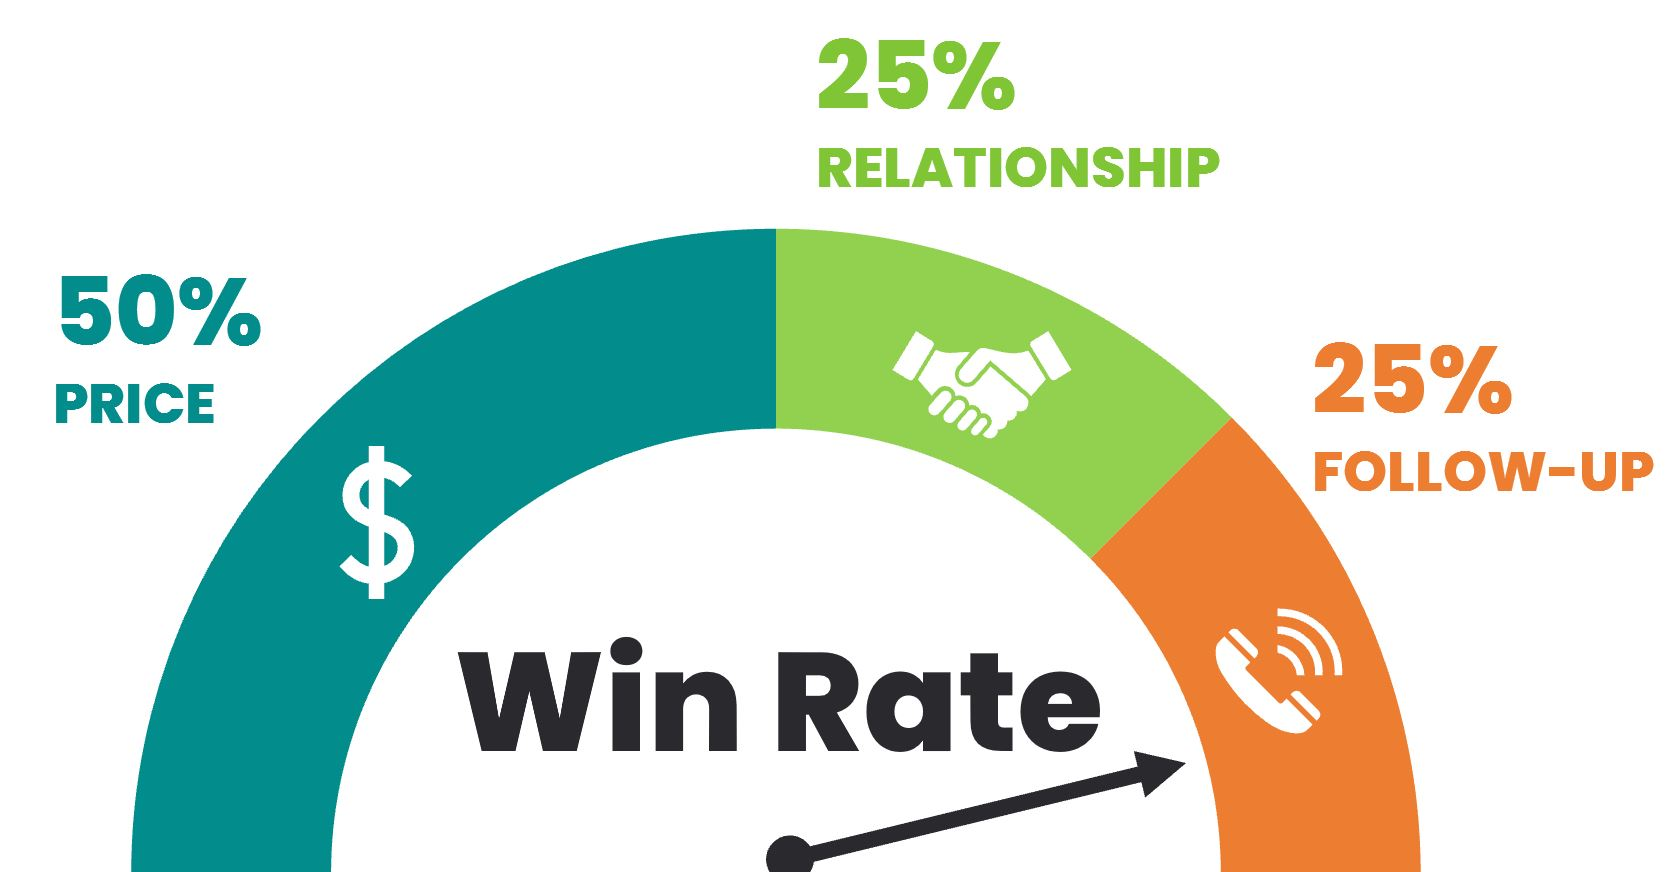 Win Rate Factors Price Relationship Follow-up